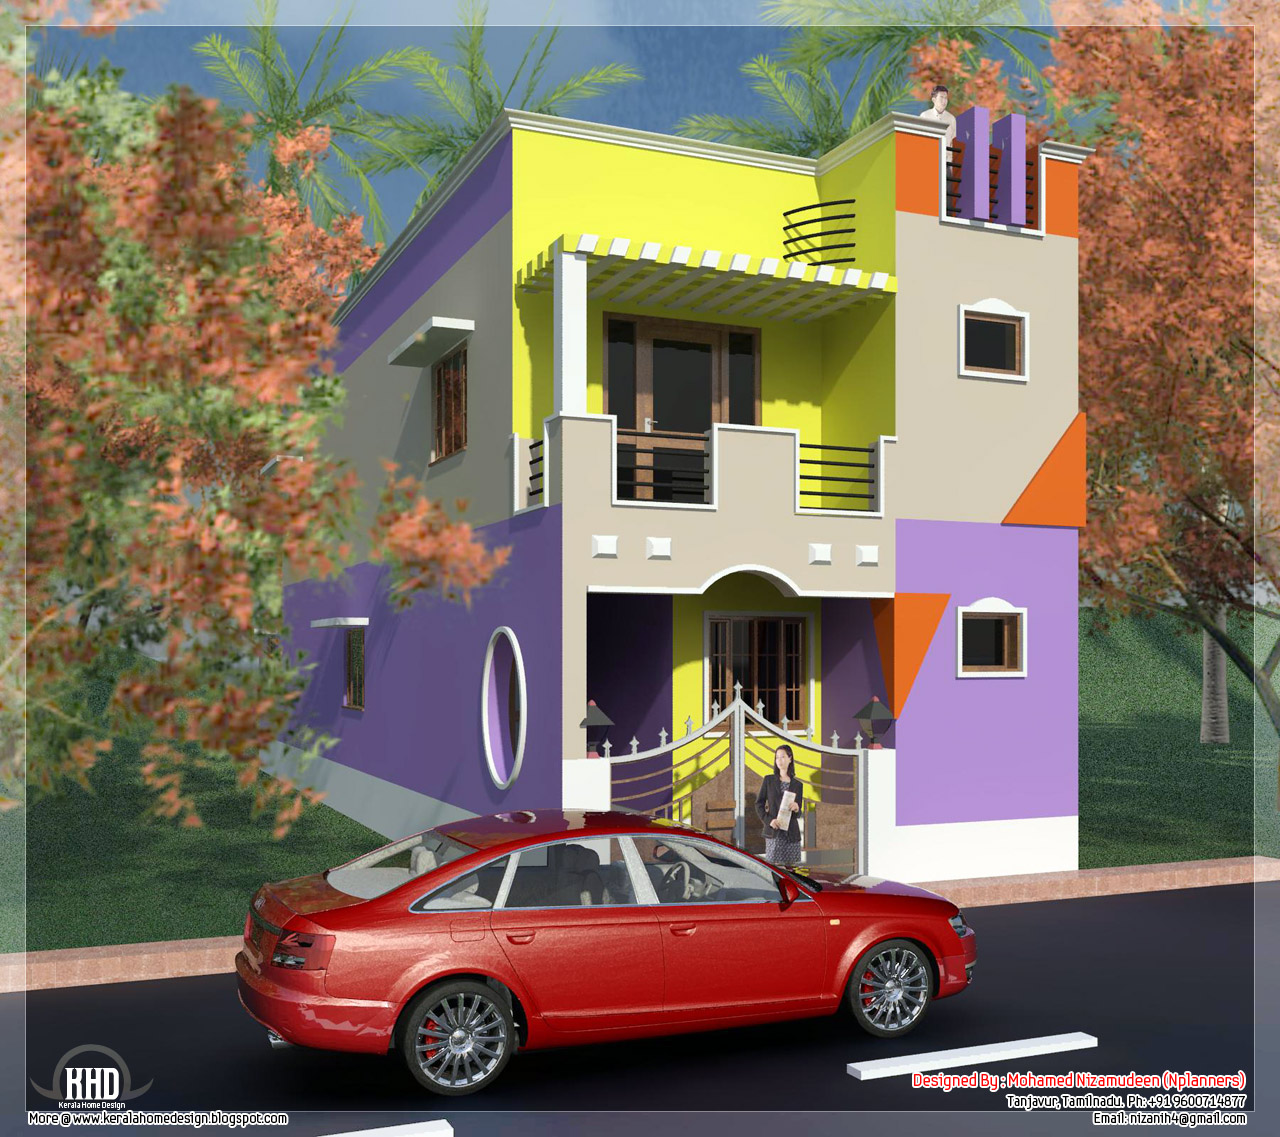 1197 minimalist tamilnadu house design for House plans for 1200 sq ft in tamilnadu